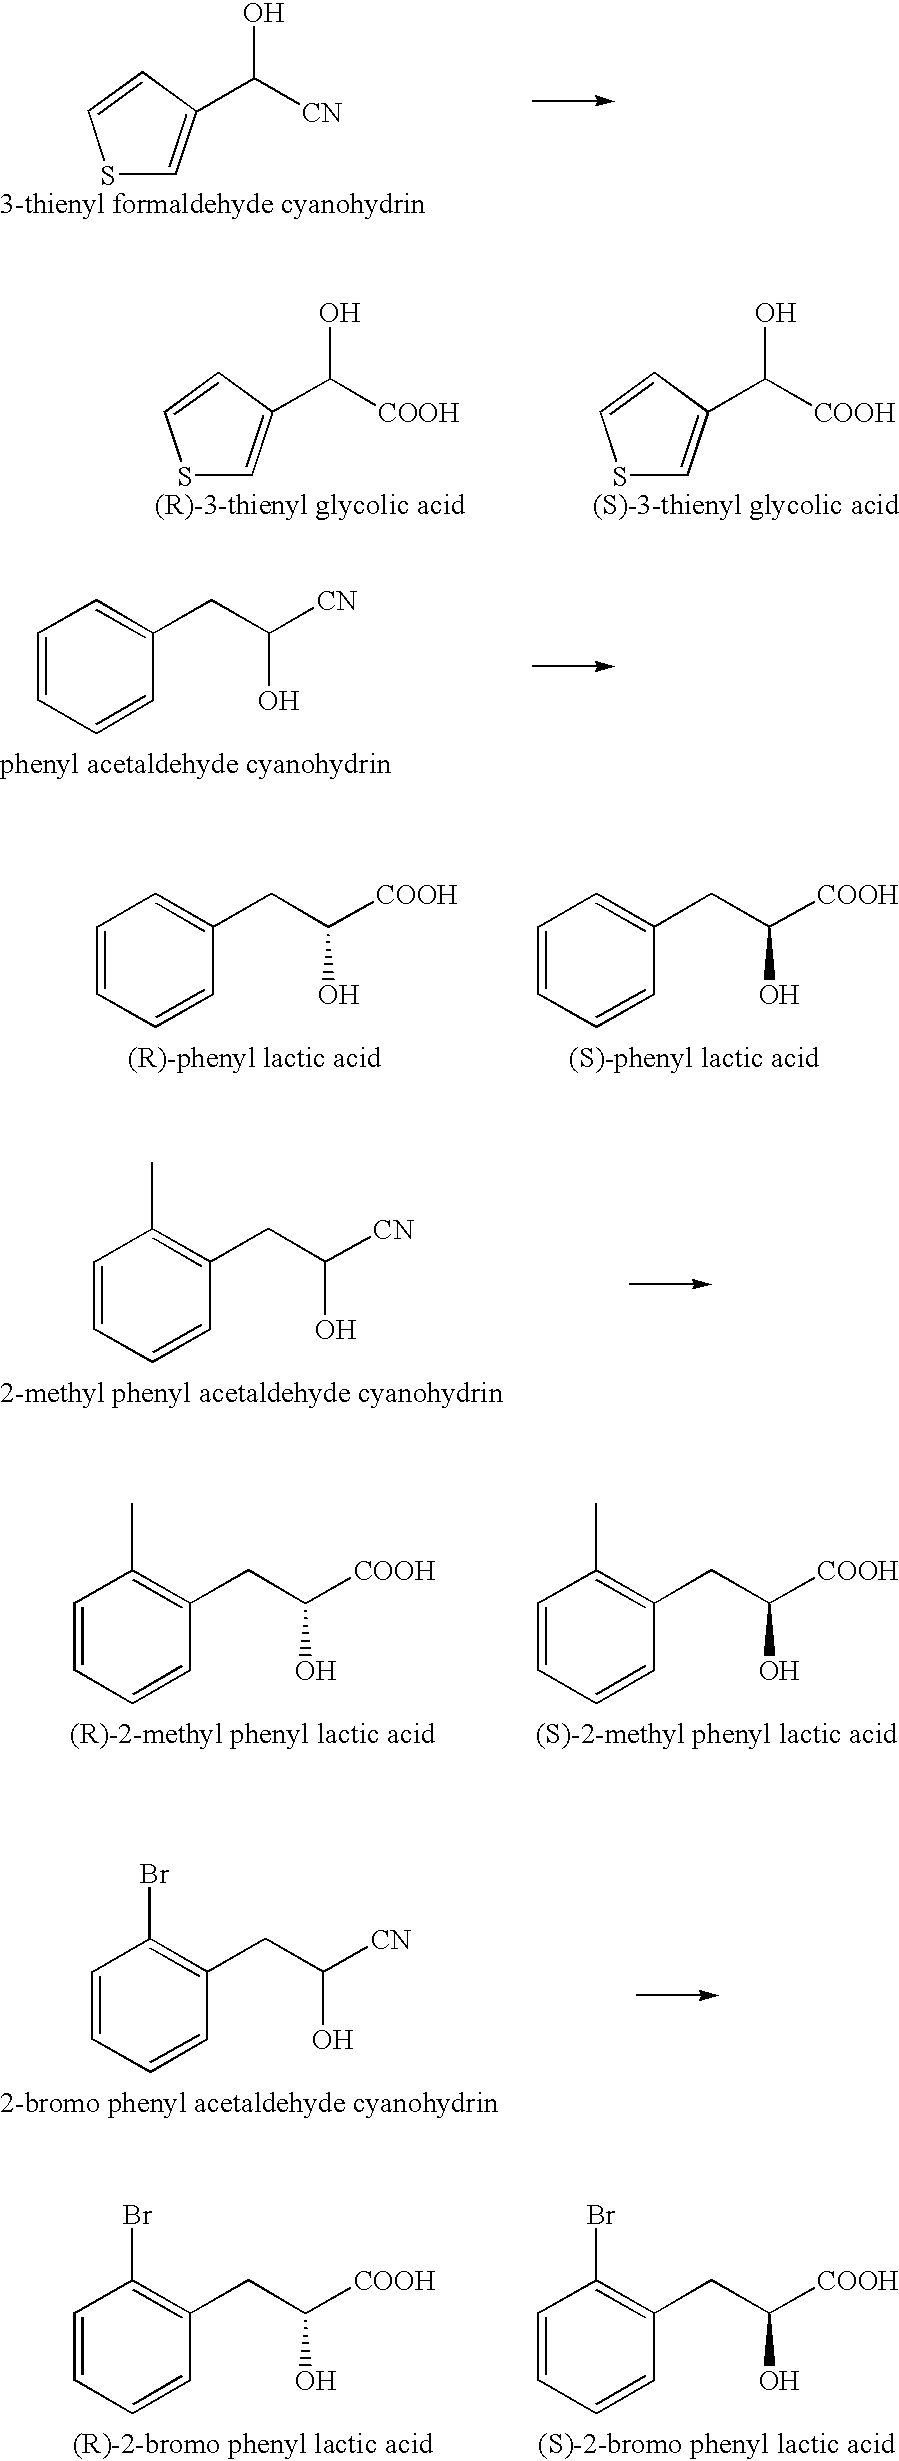 US B2 Nitrilases and methods for making and using them